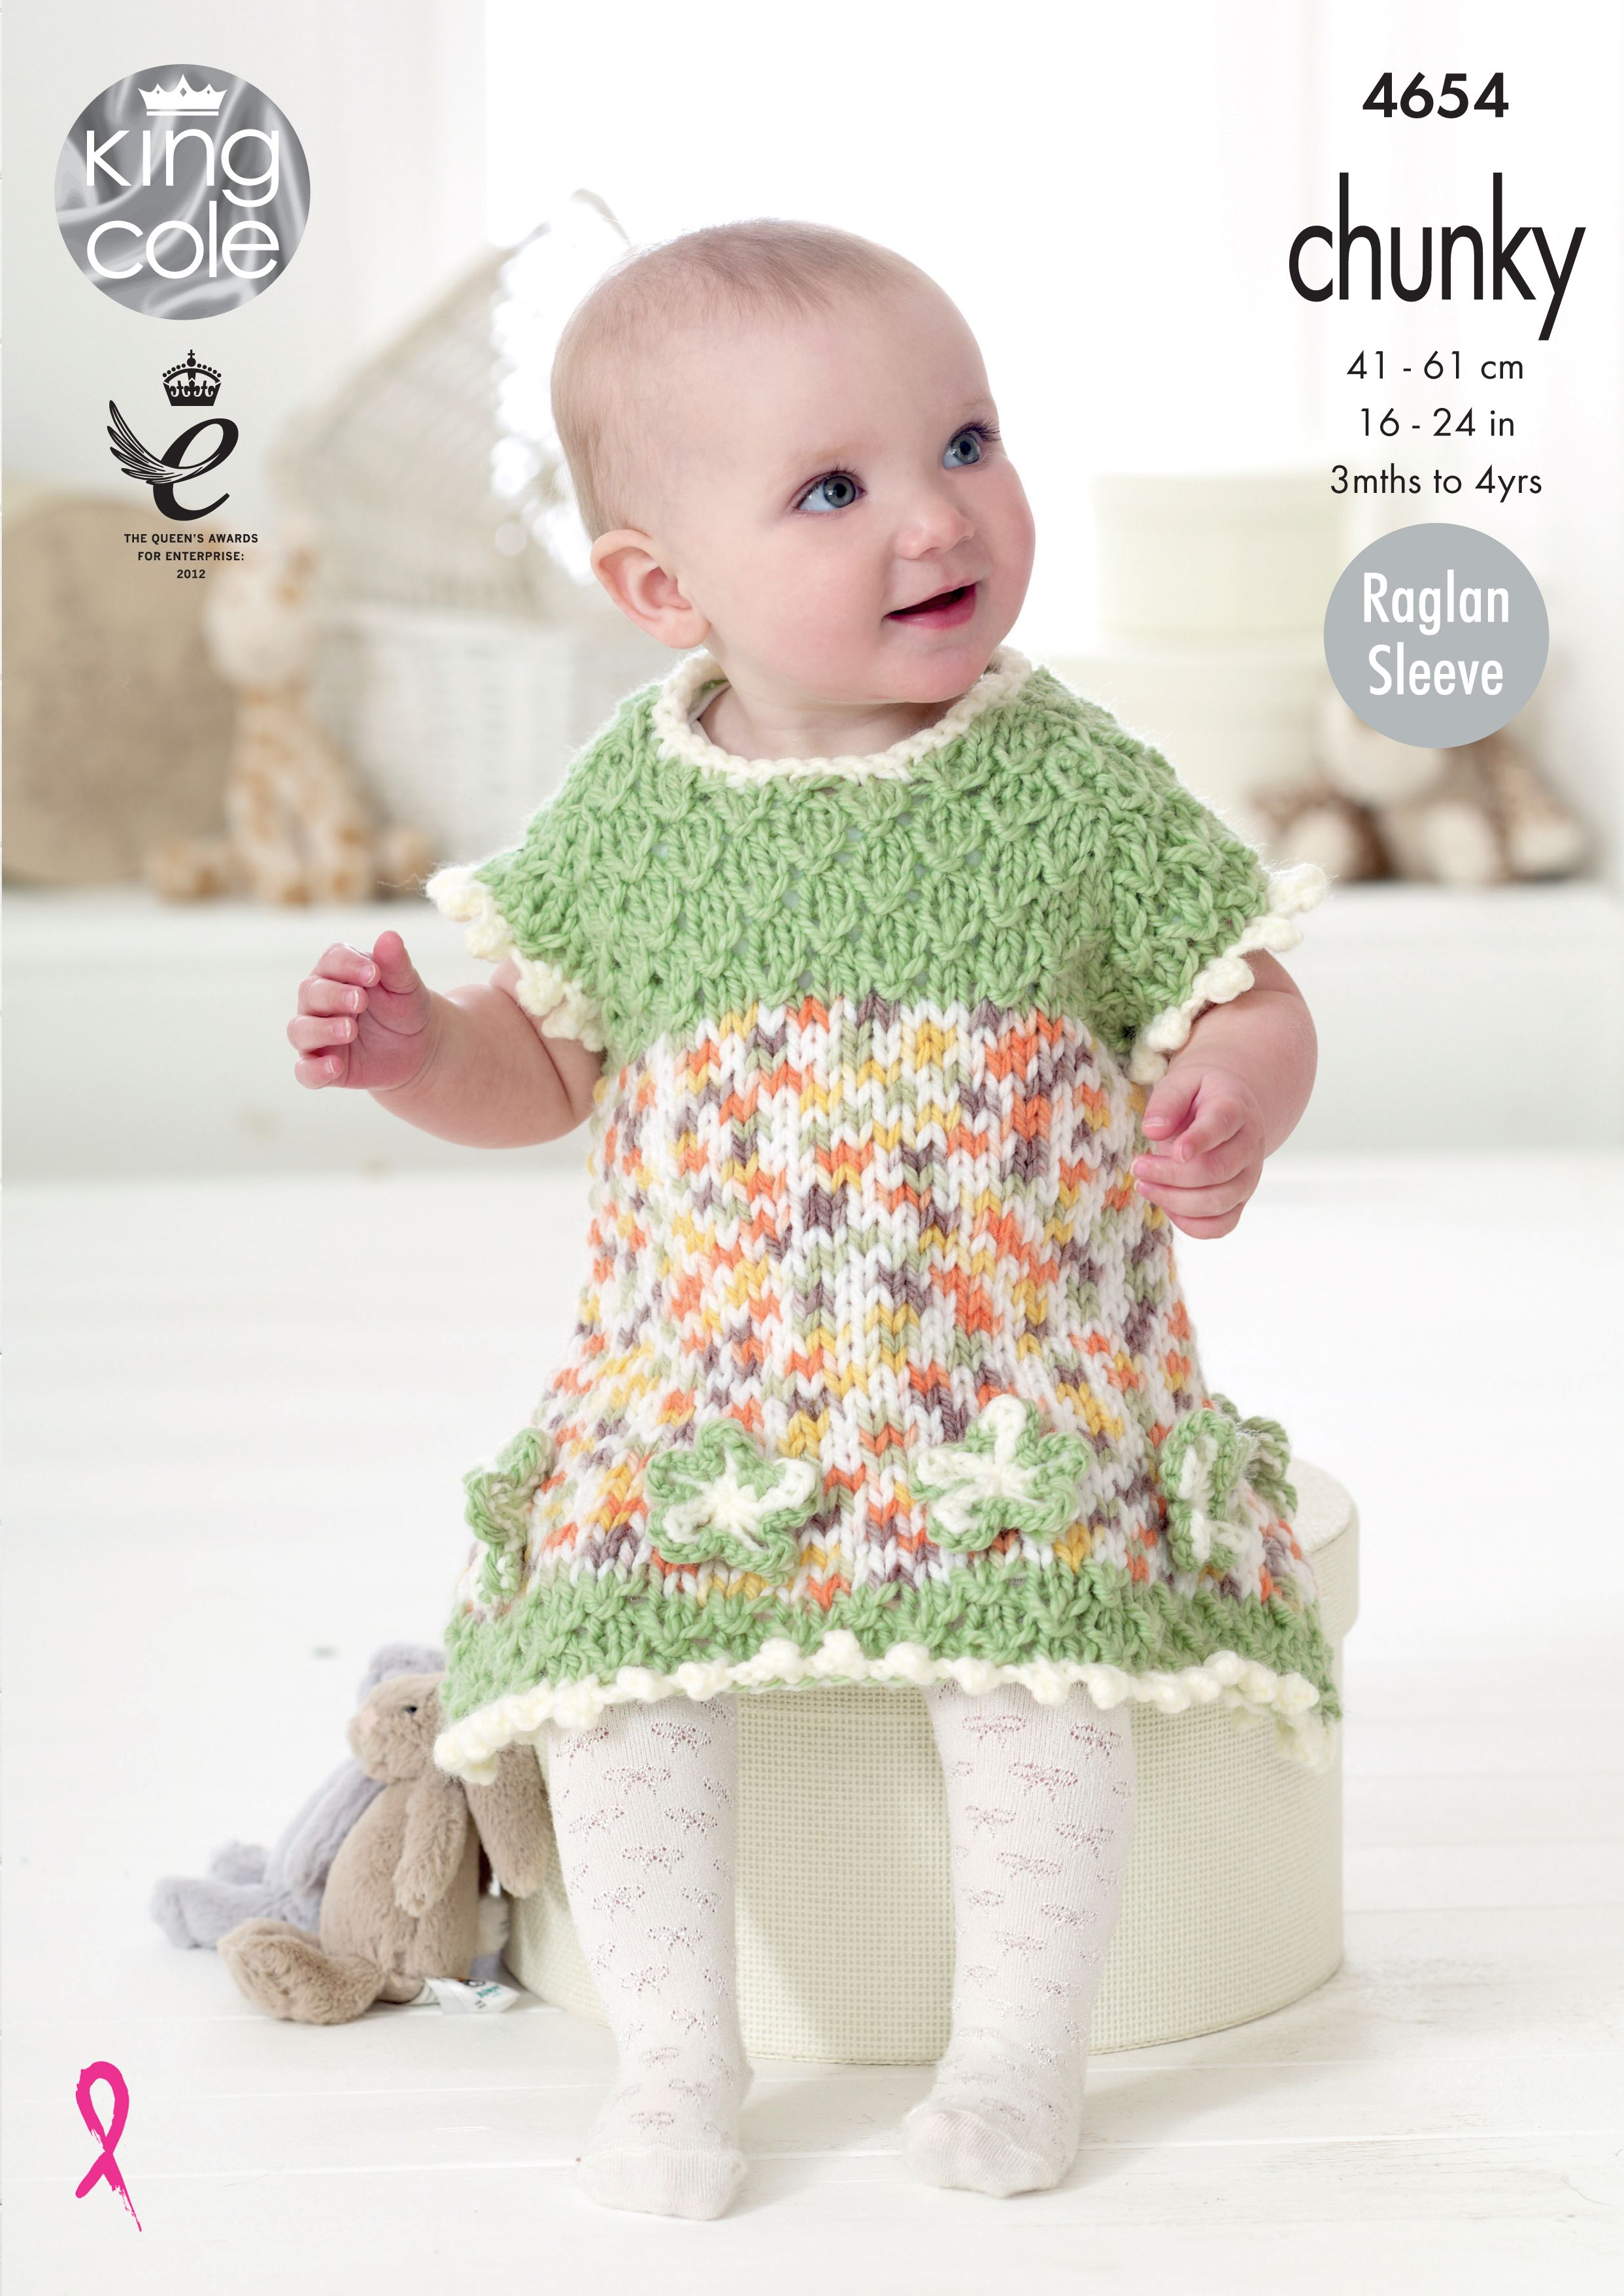 f2ec81734c97 Chunky Knitted Baby Set - King Cole